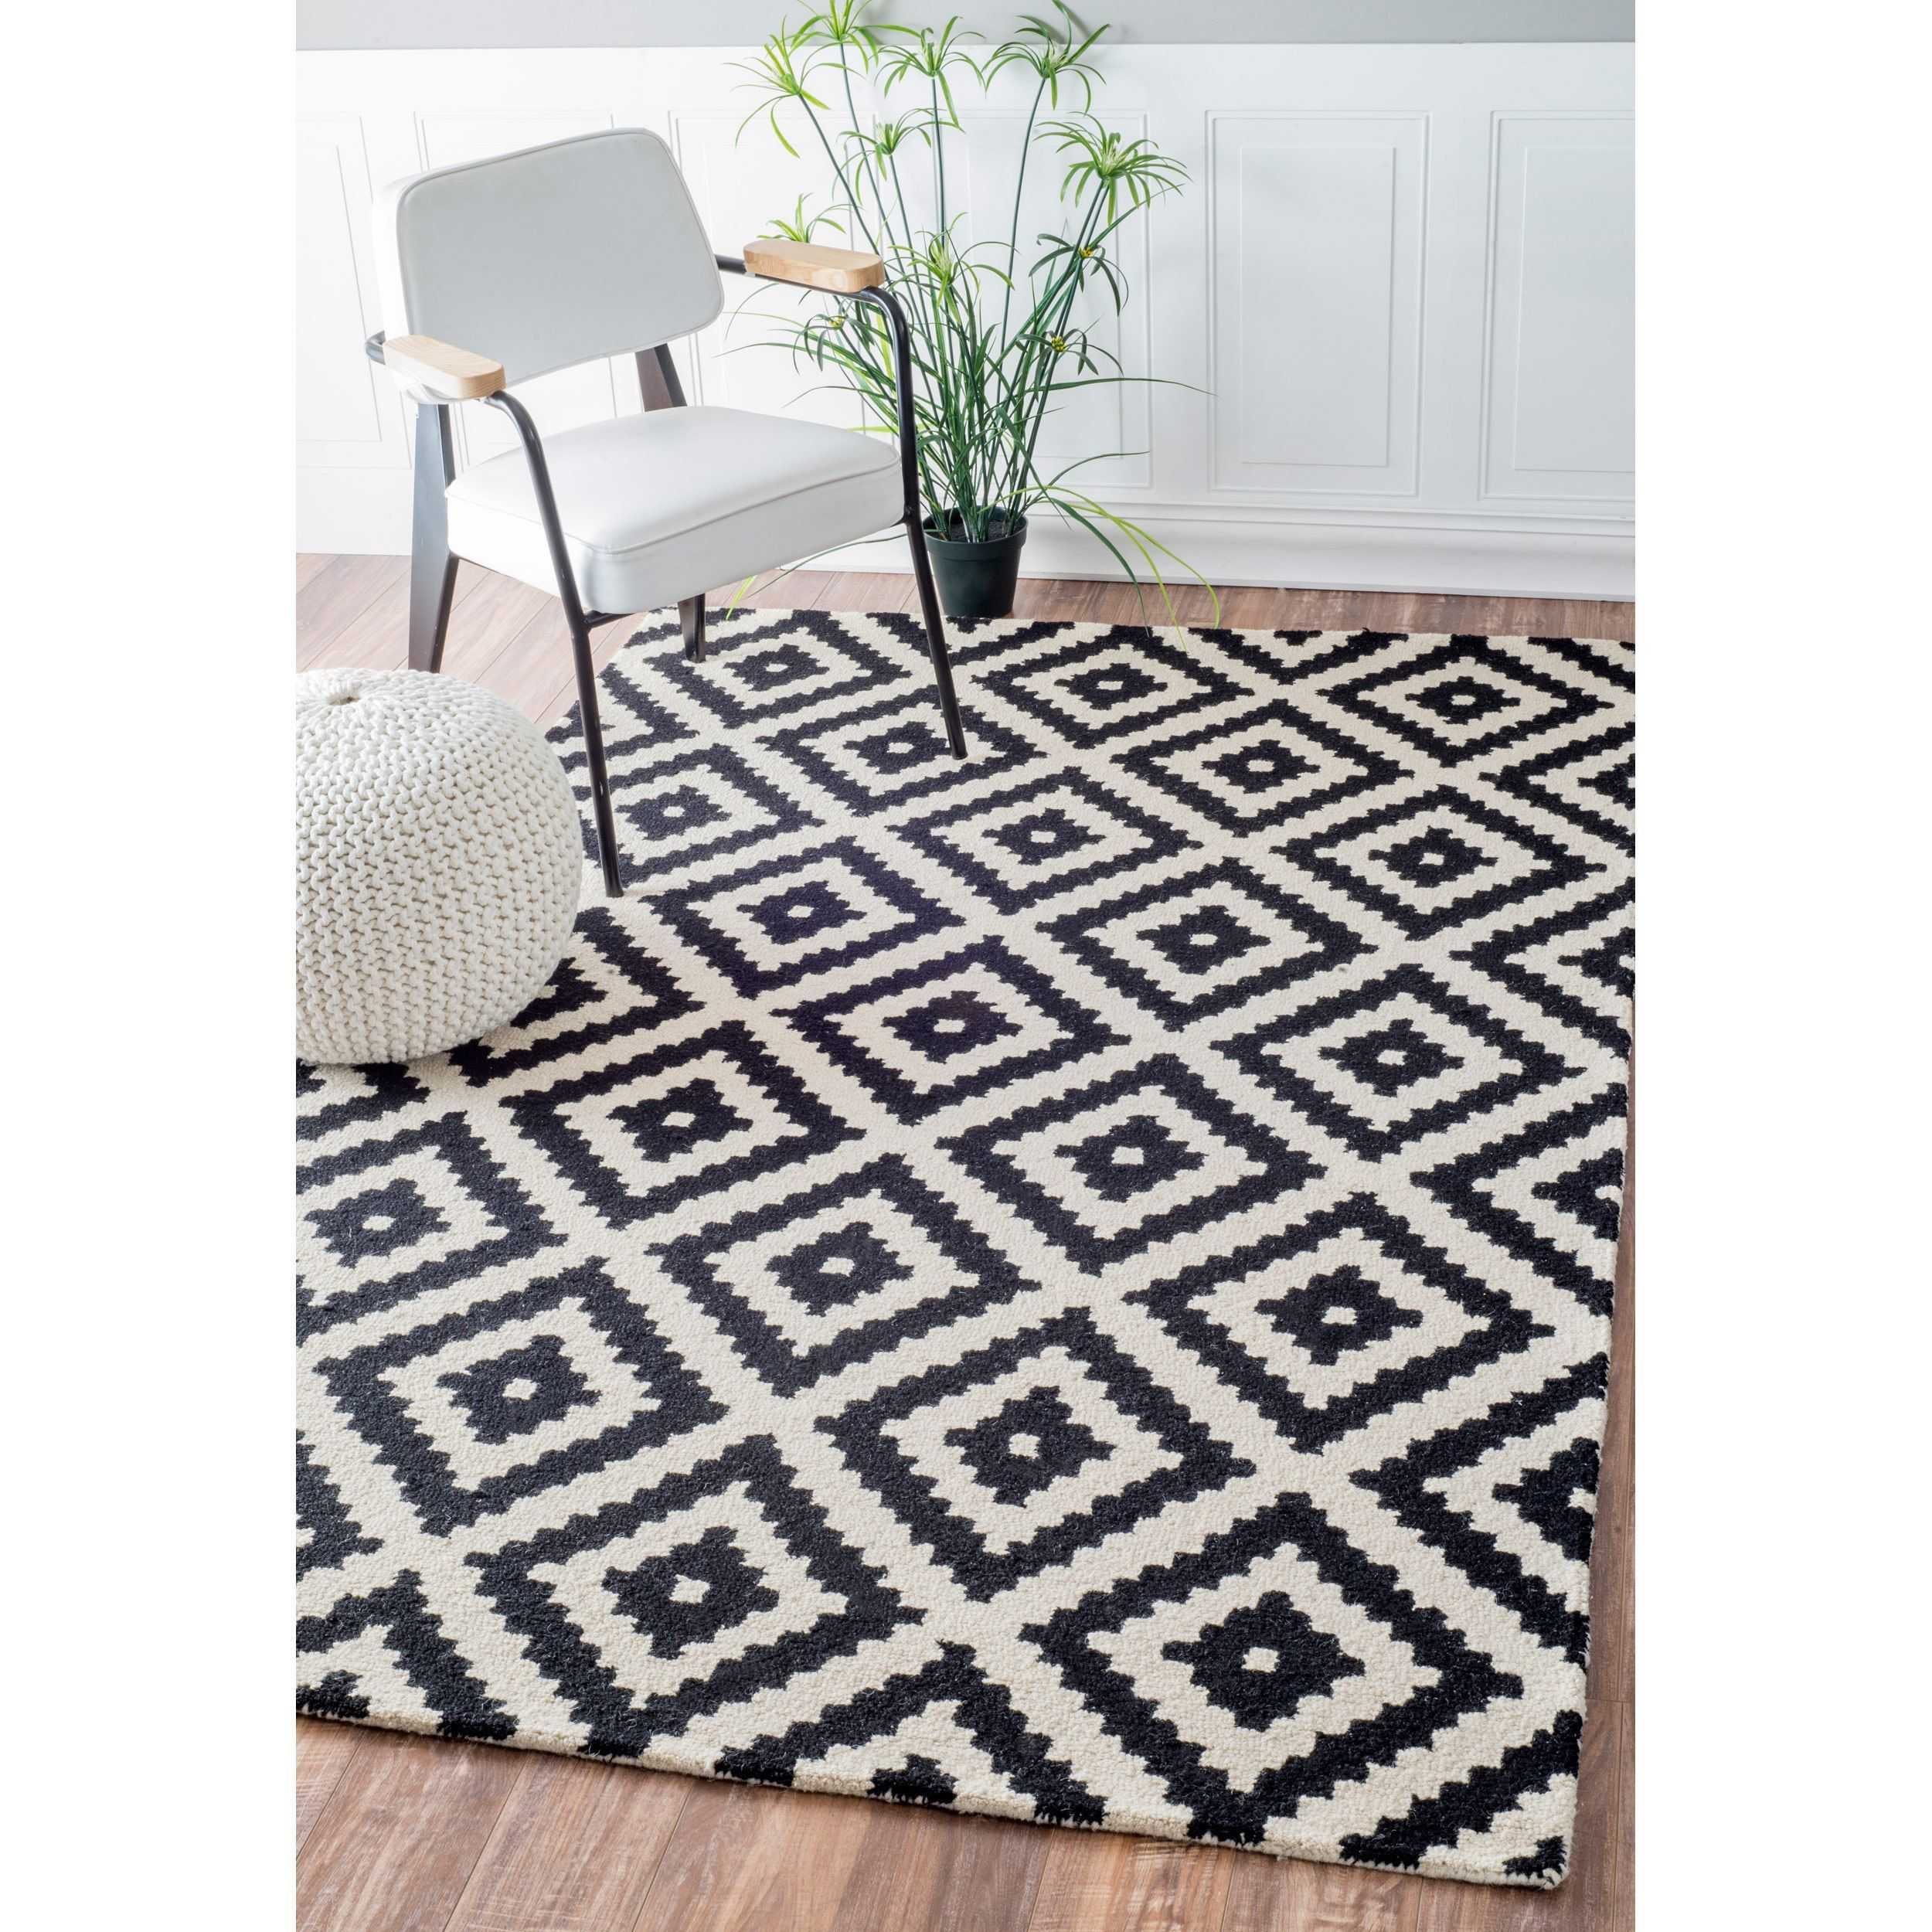 nuLOOM Handmade Abstract Wool Fancy Pixel Trellis Rug (5' x 8') - Overstock Shopping - Great Deals on Nuloom 5x8 - 6x9 Rugs